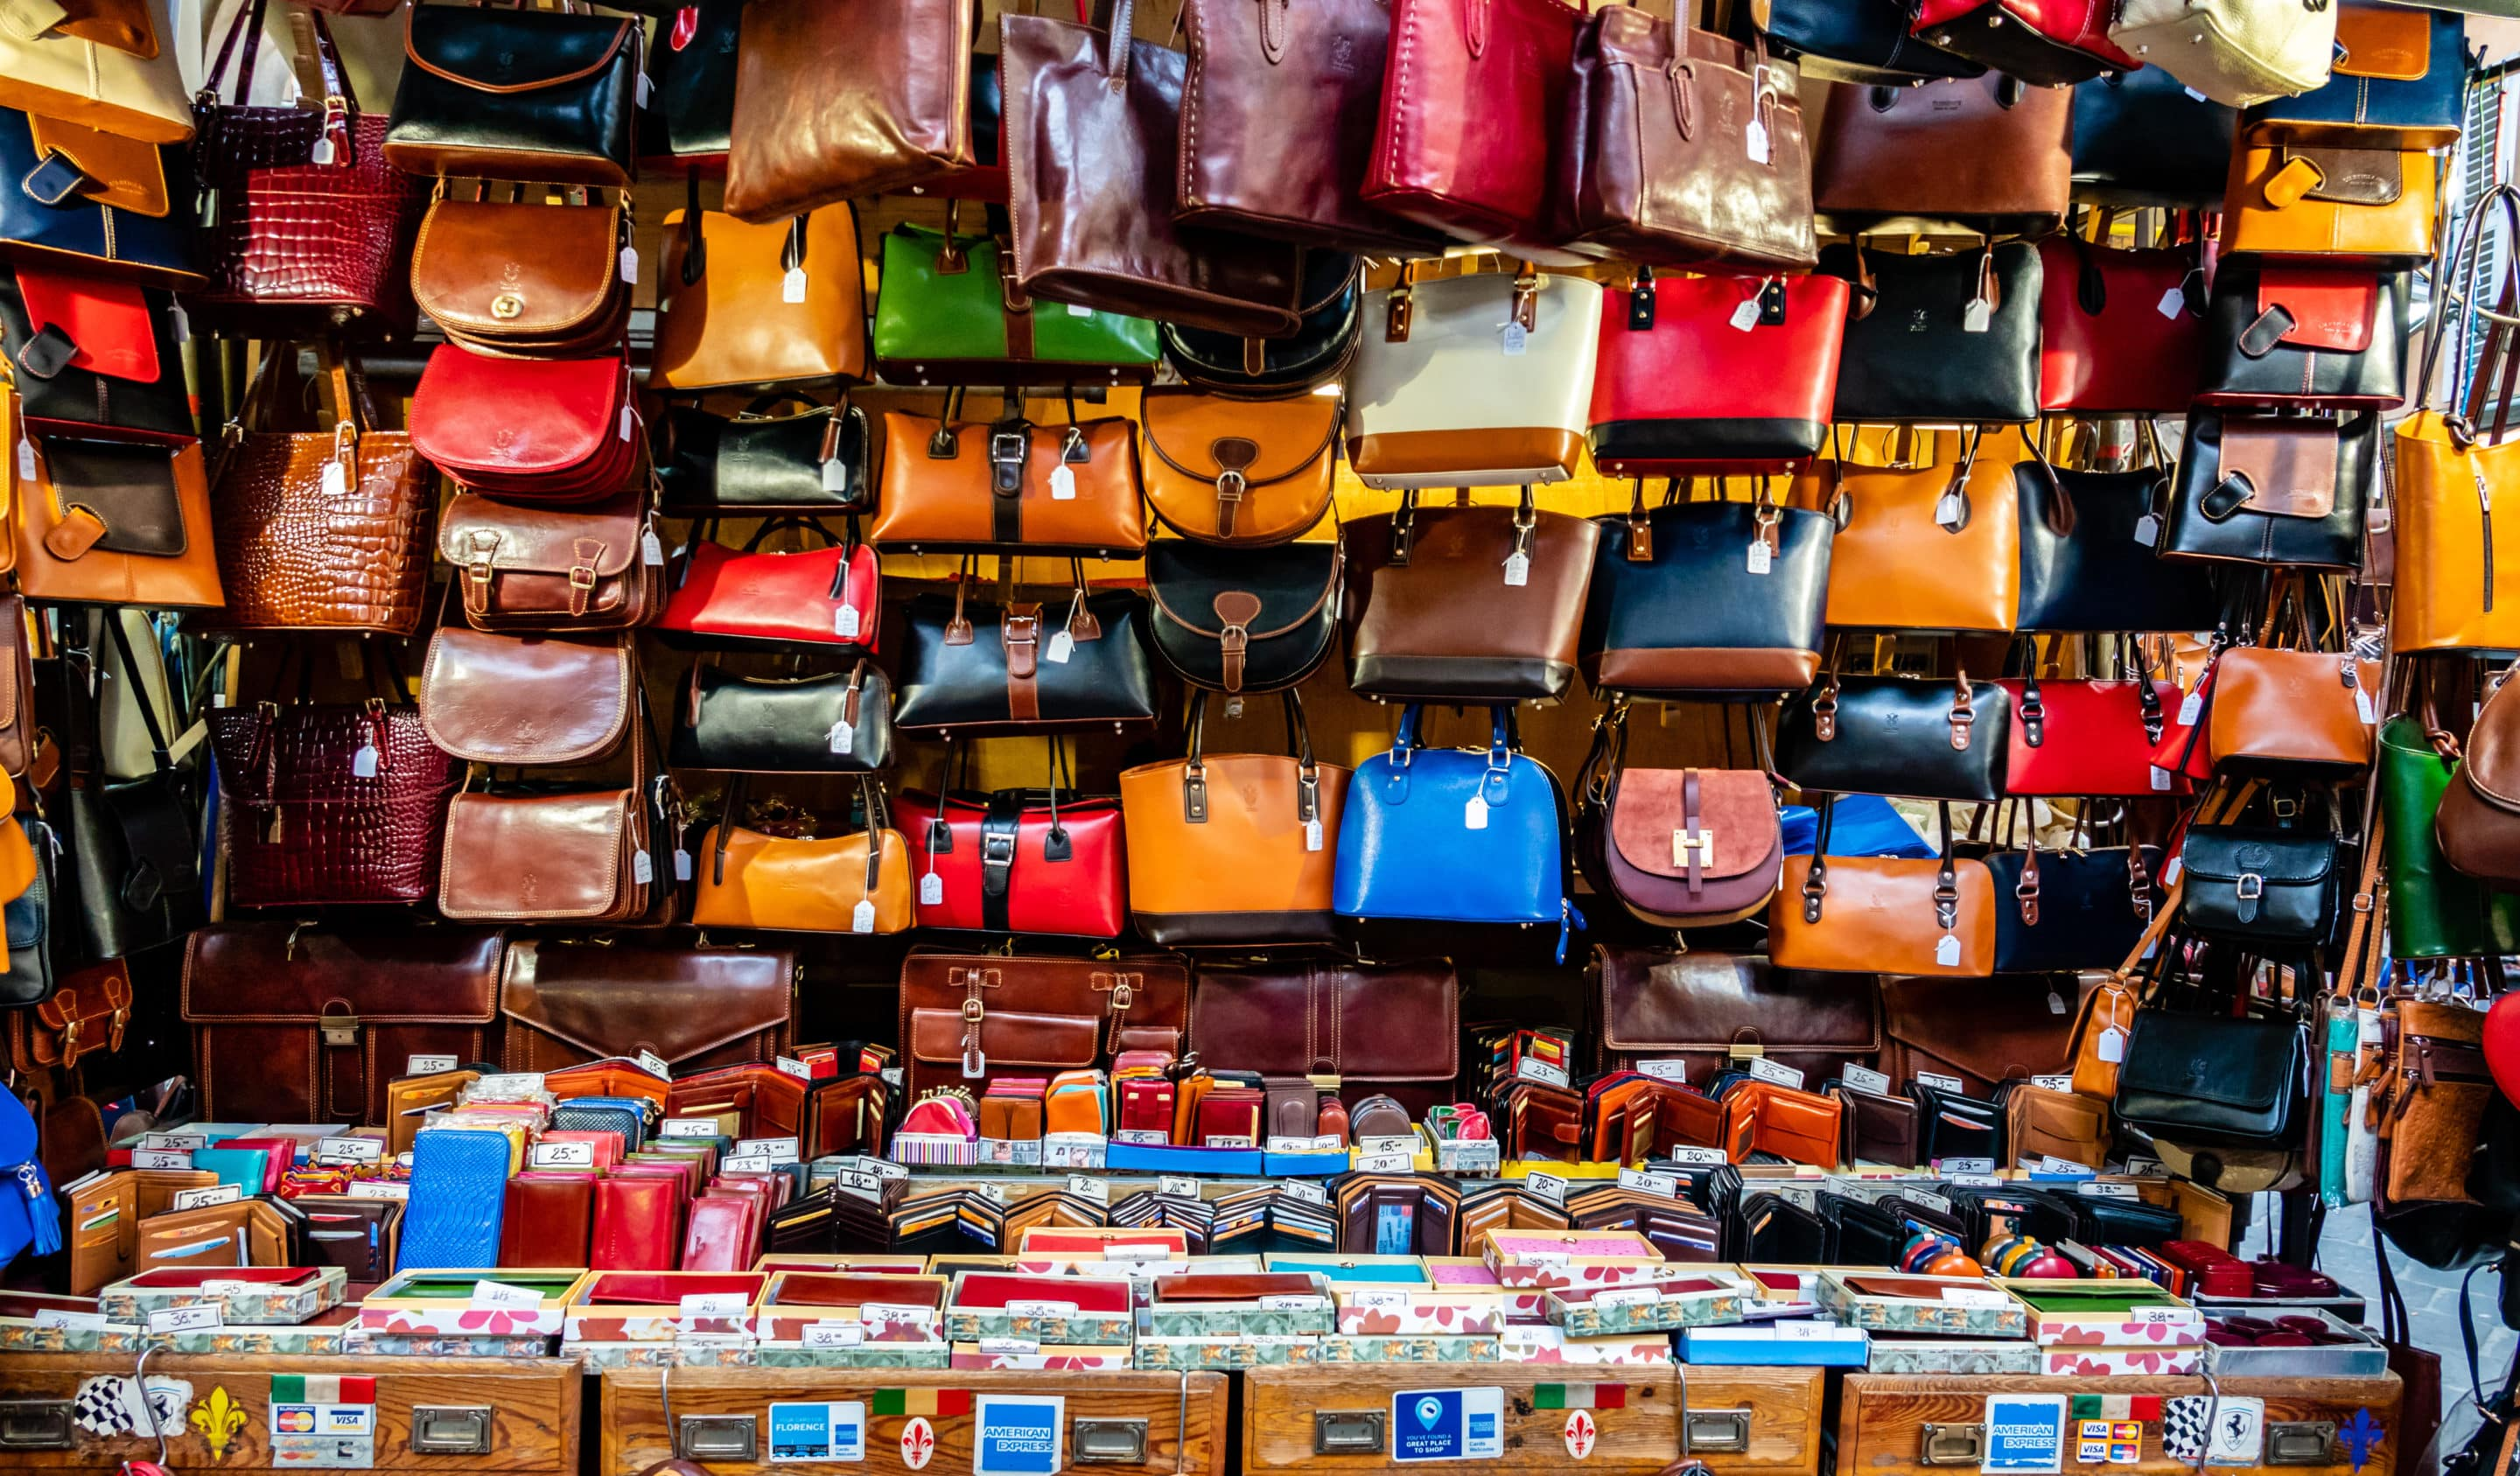 Why protect against counterfeit